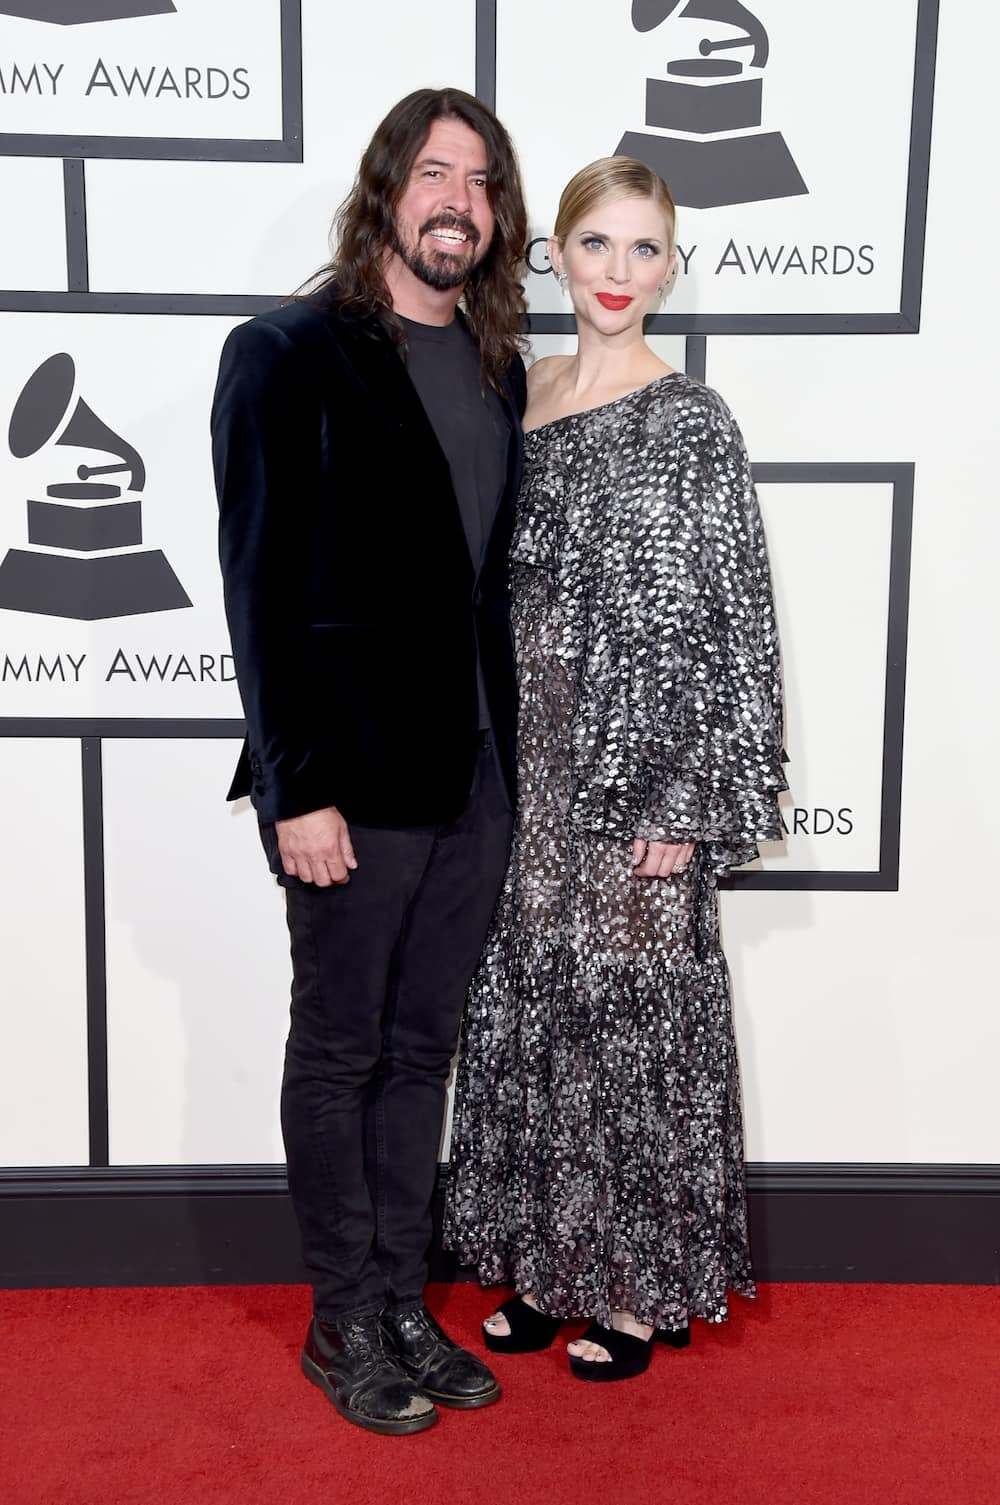 Dave Grohl's wife